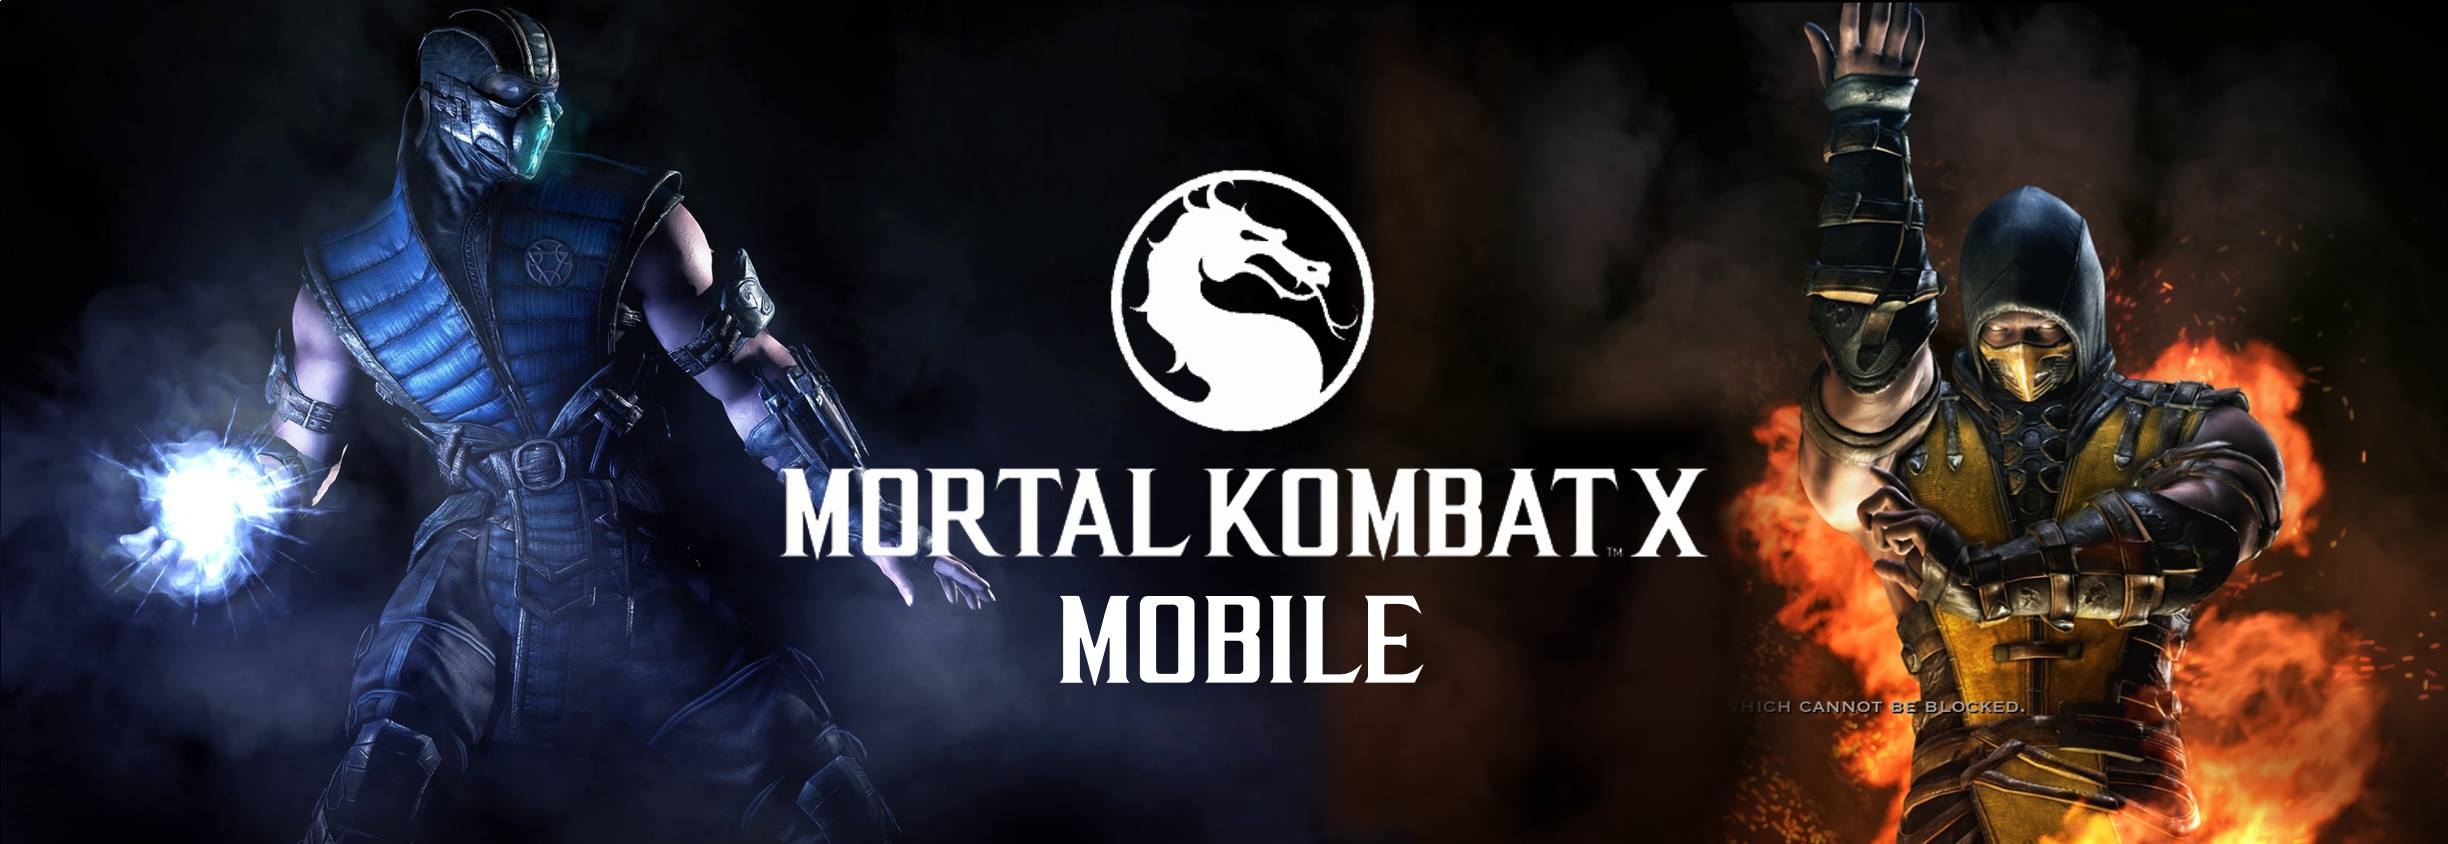 Mortal Combat Mobile logo with Subzero to the left and Scorpion to the right